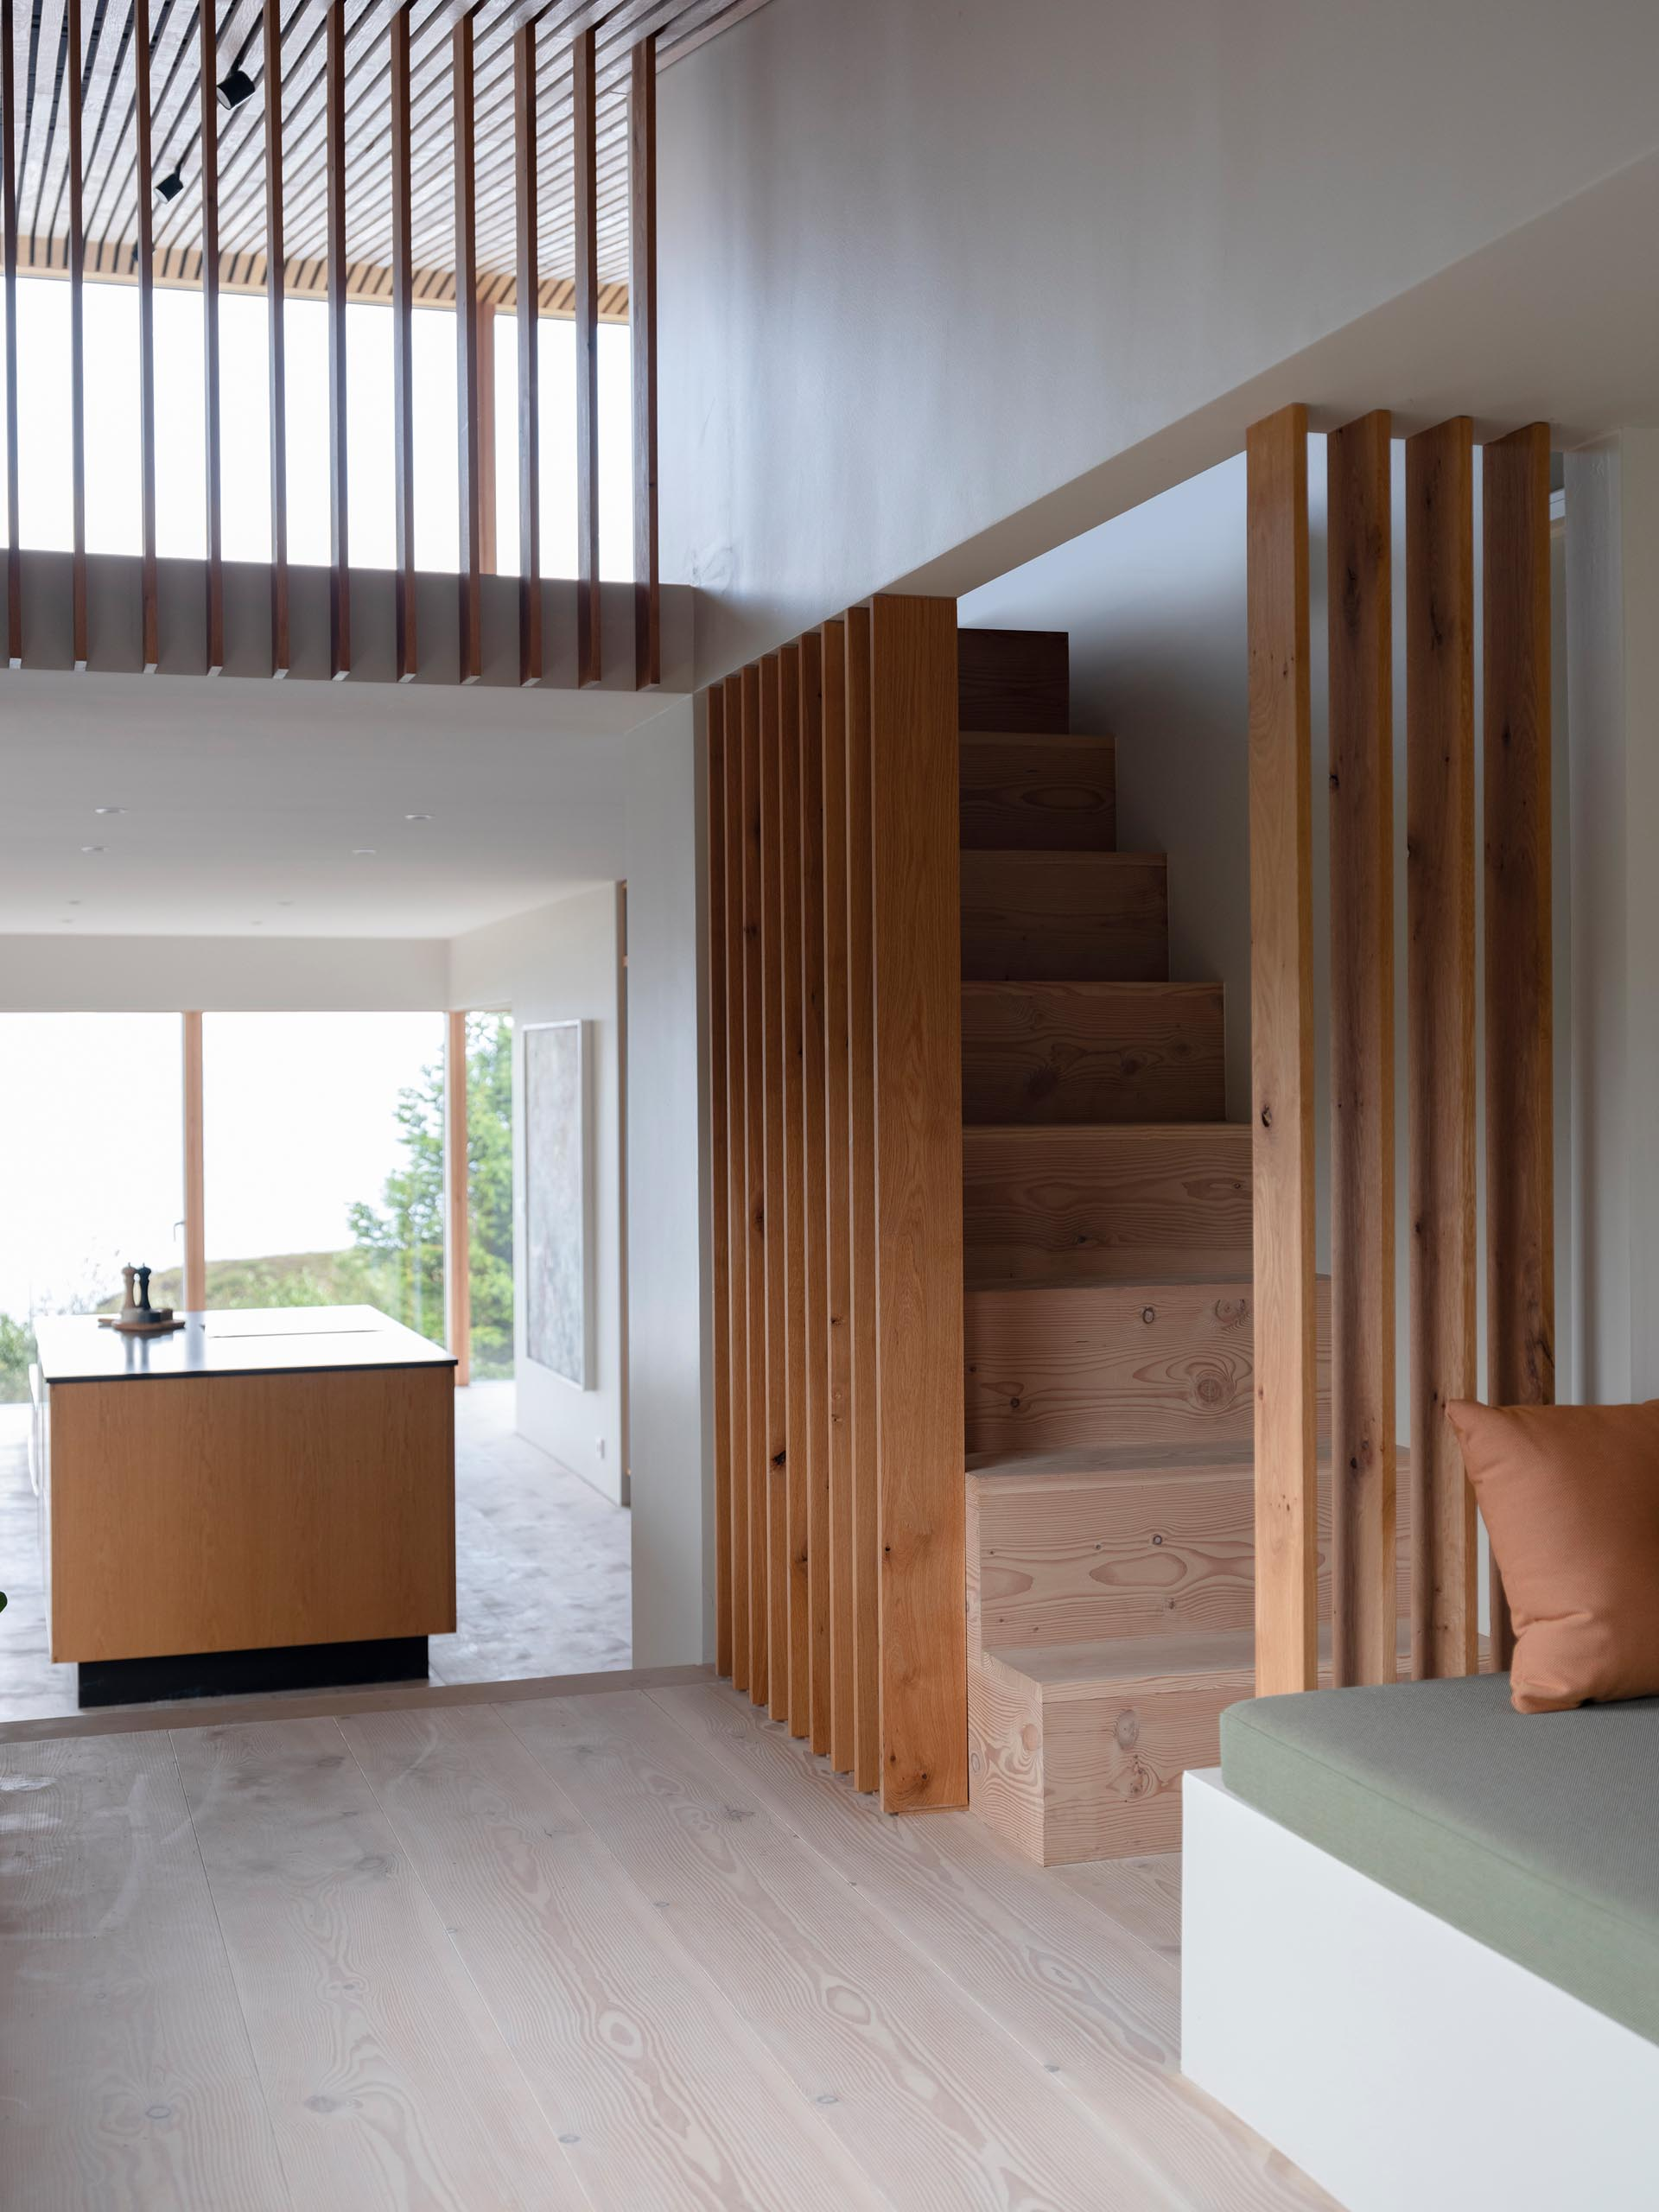 A modern home with wood floors and stairs.